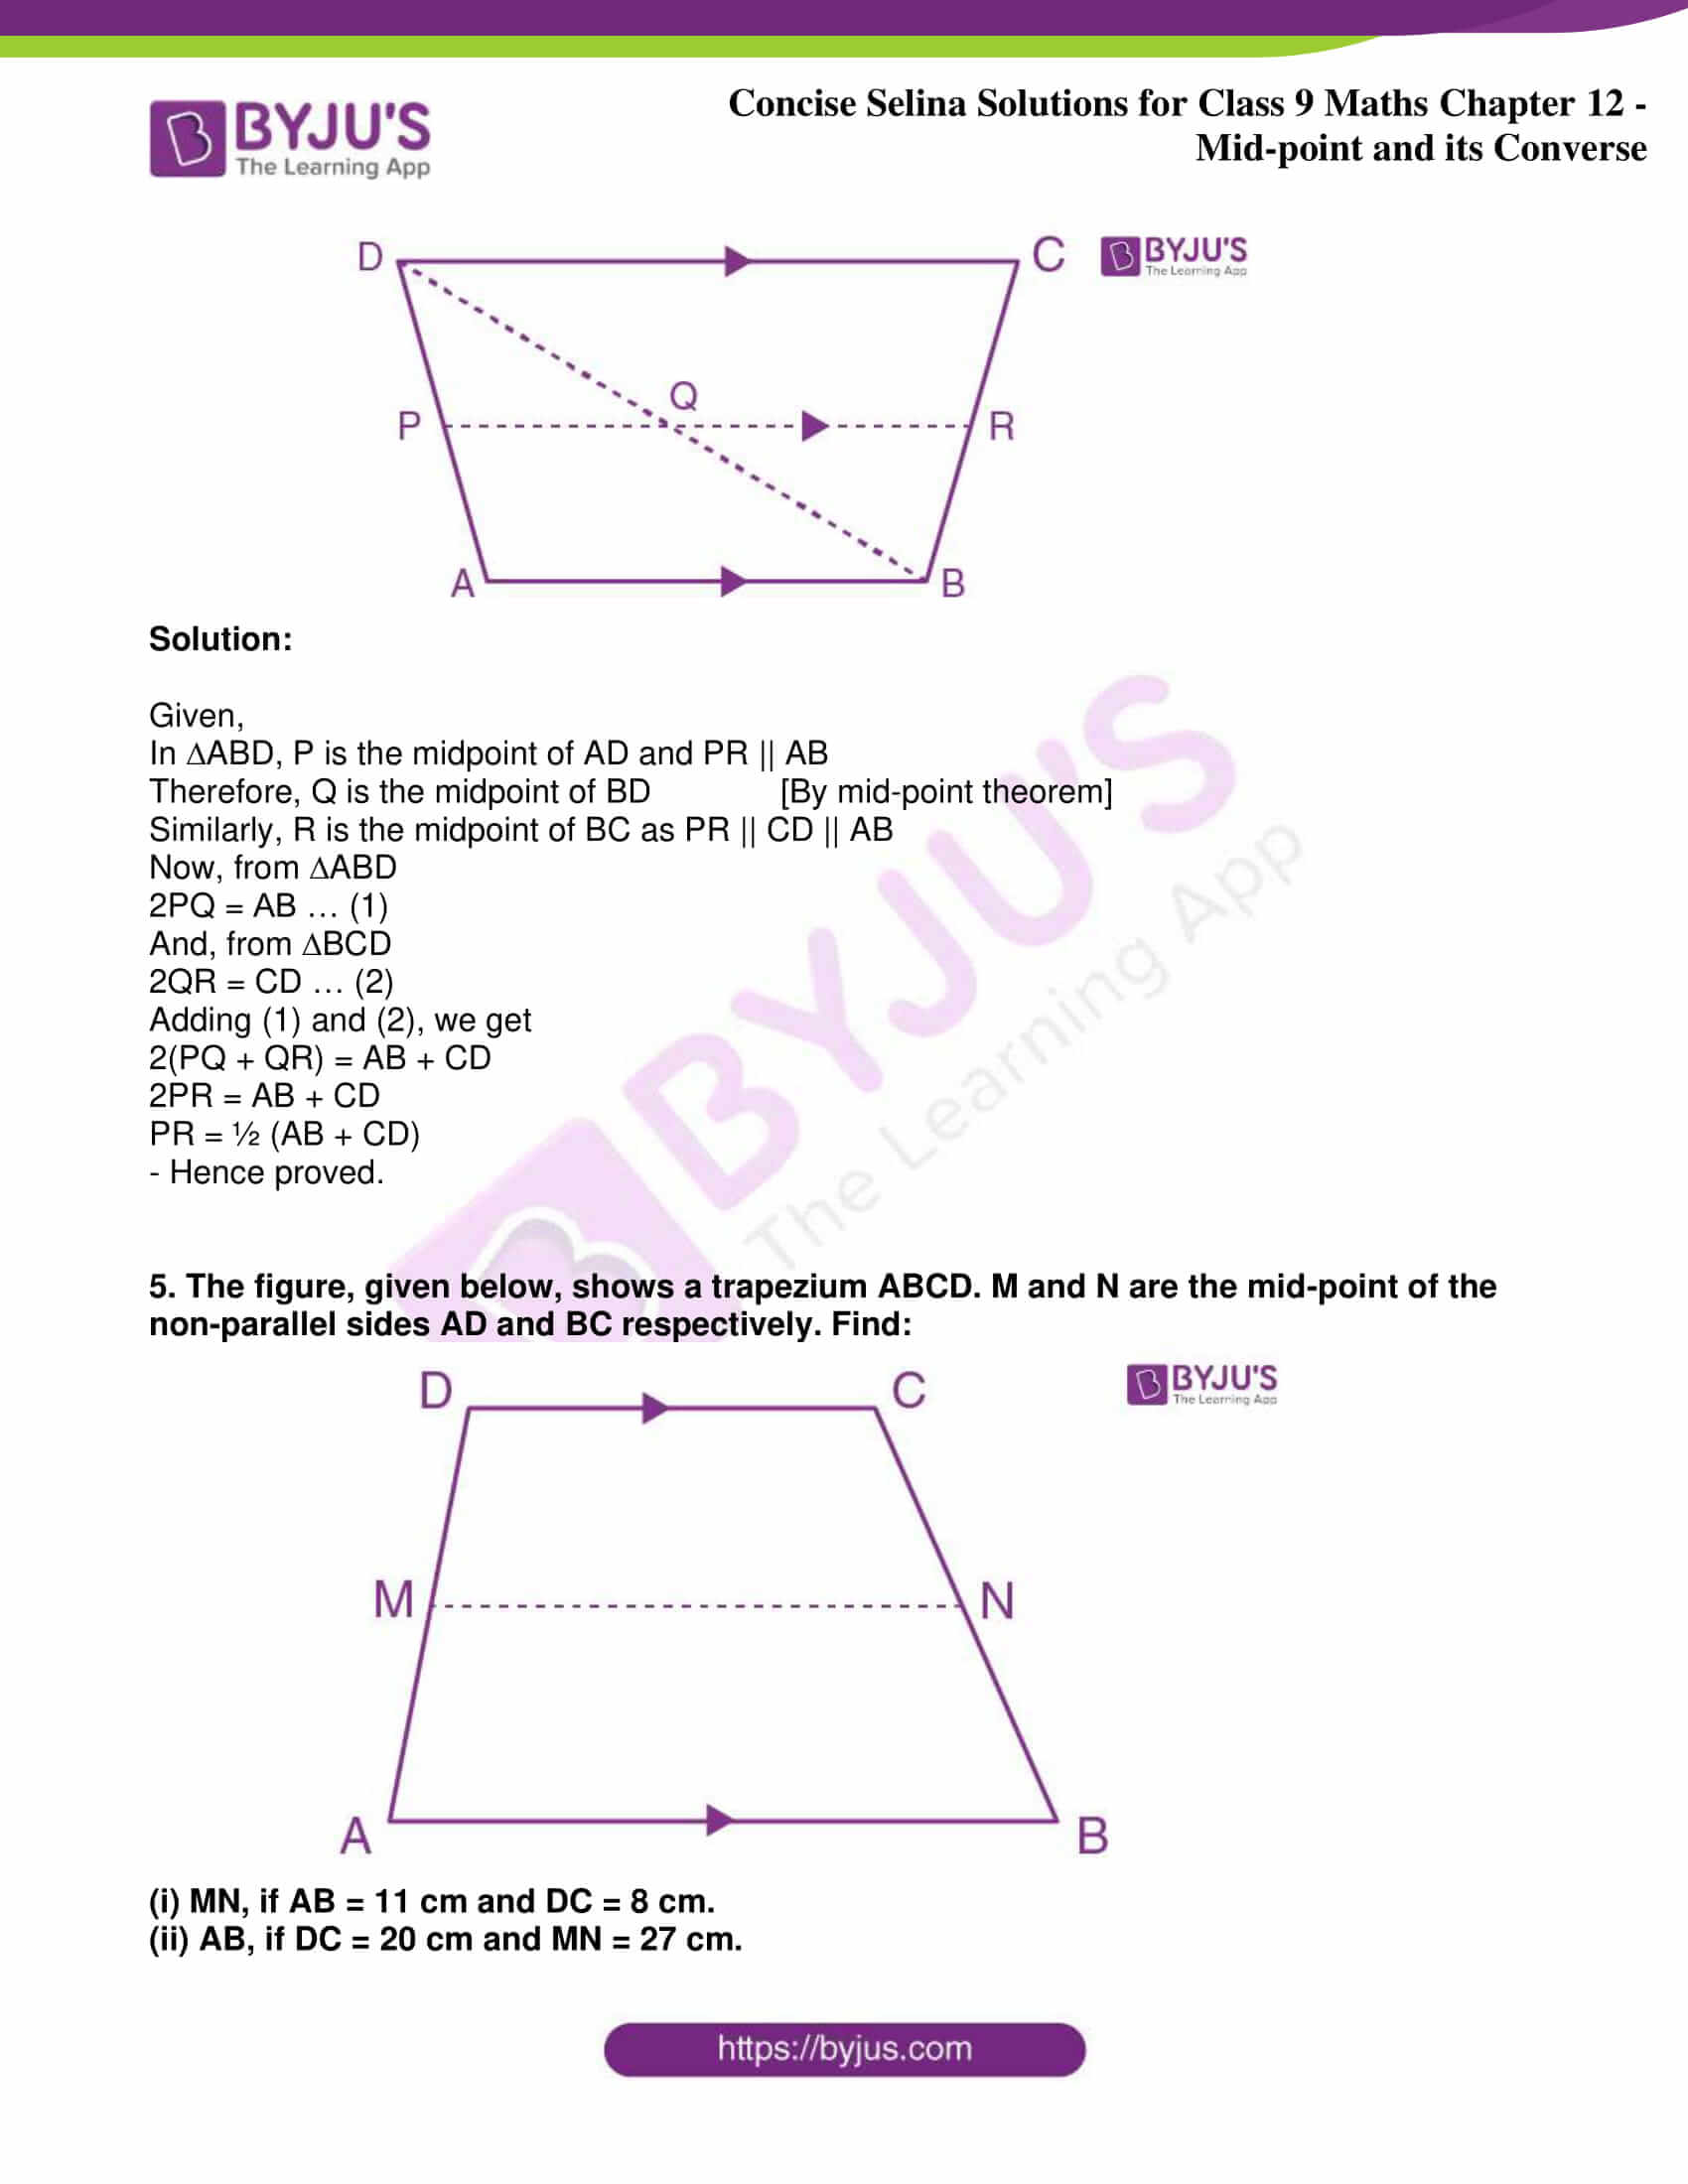 icse class 9 jun8 maths selina solutions chapter 12 midpoint and its converse 03